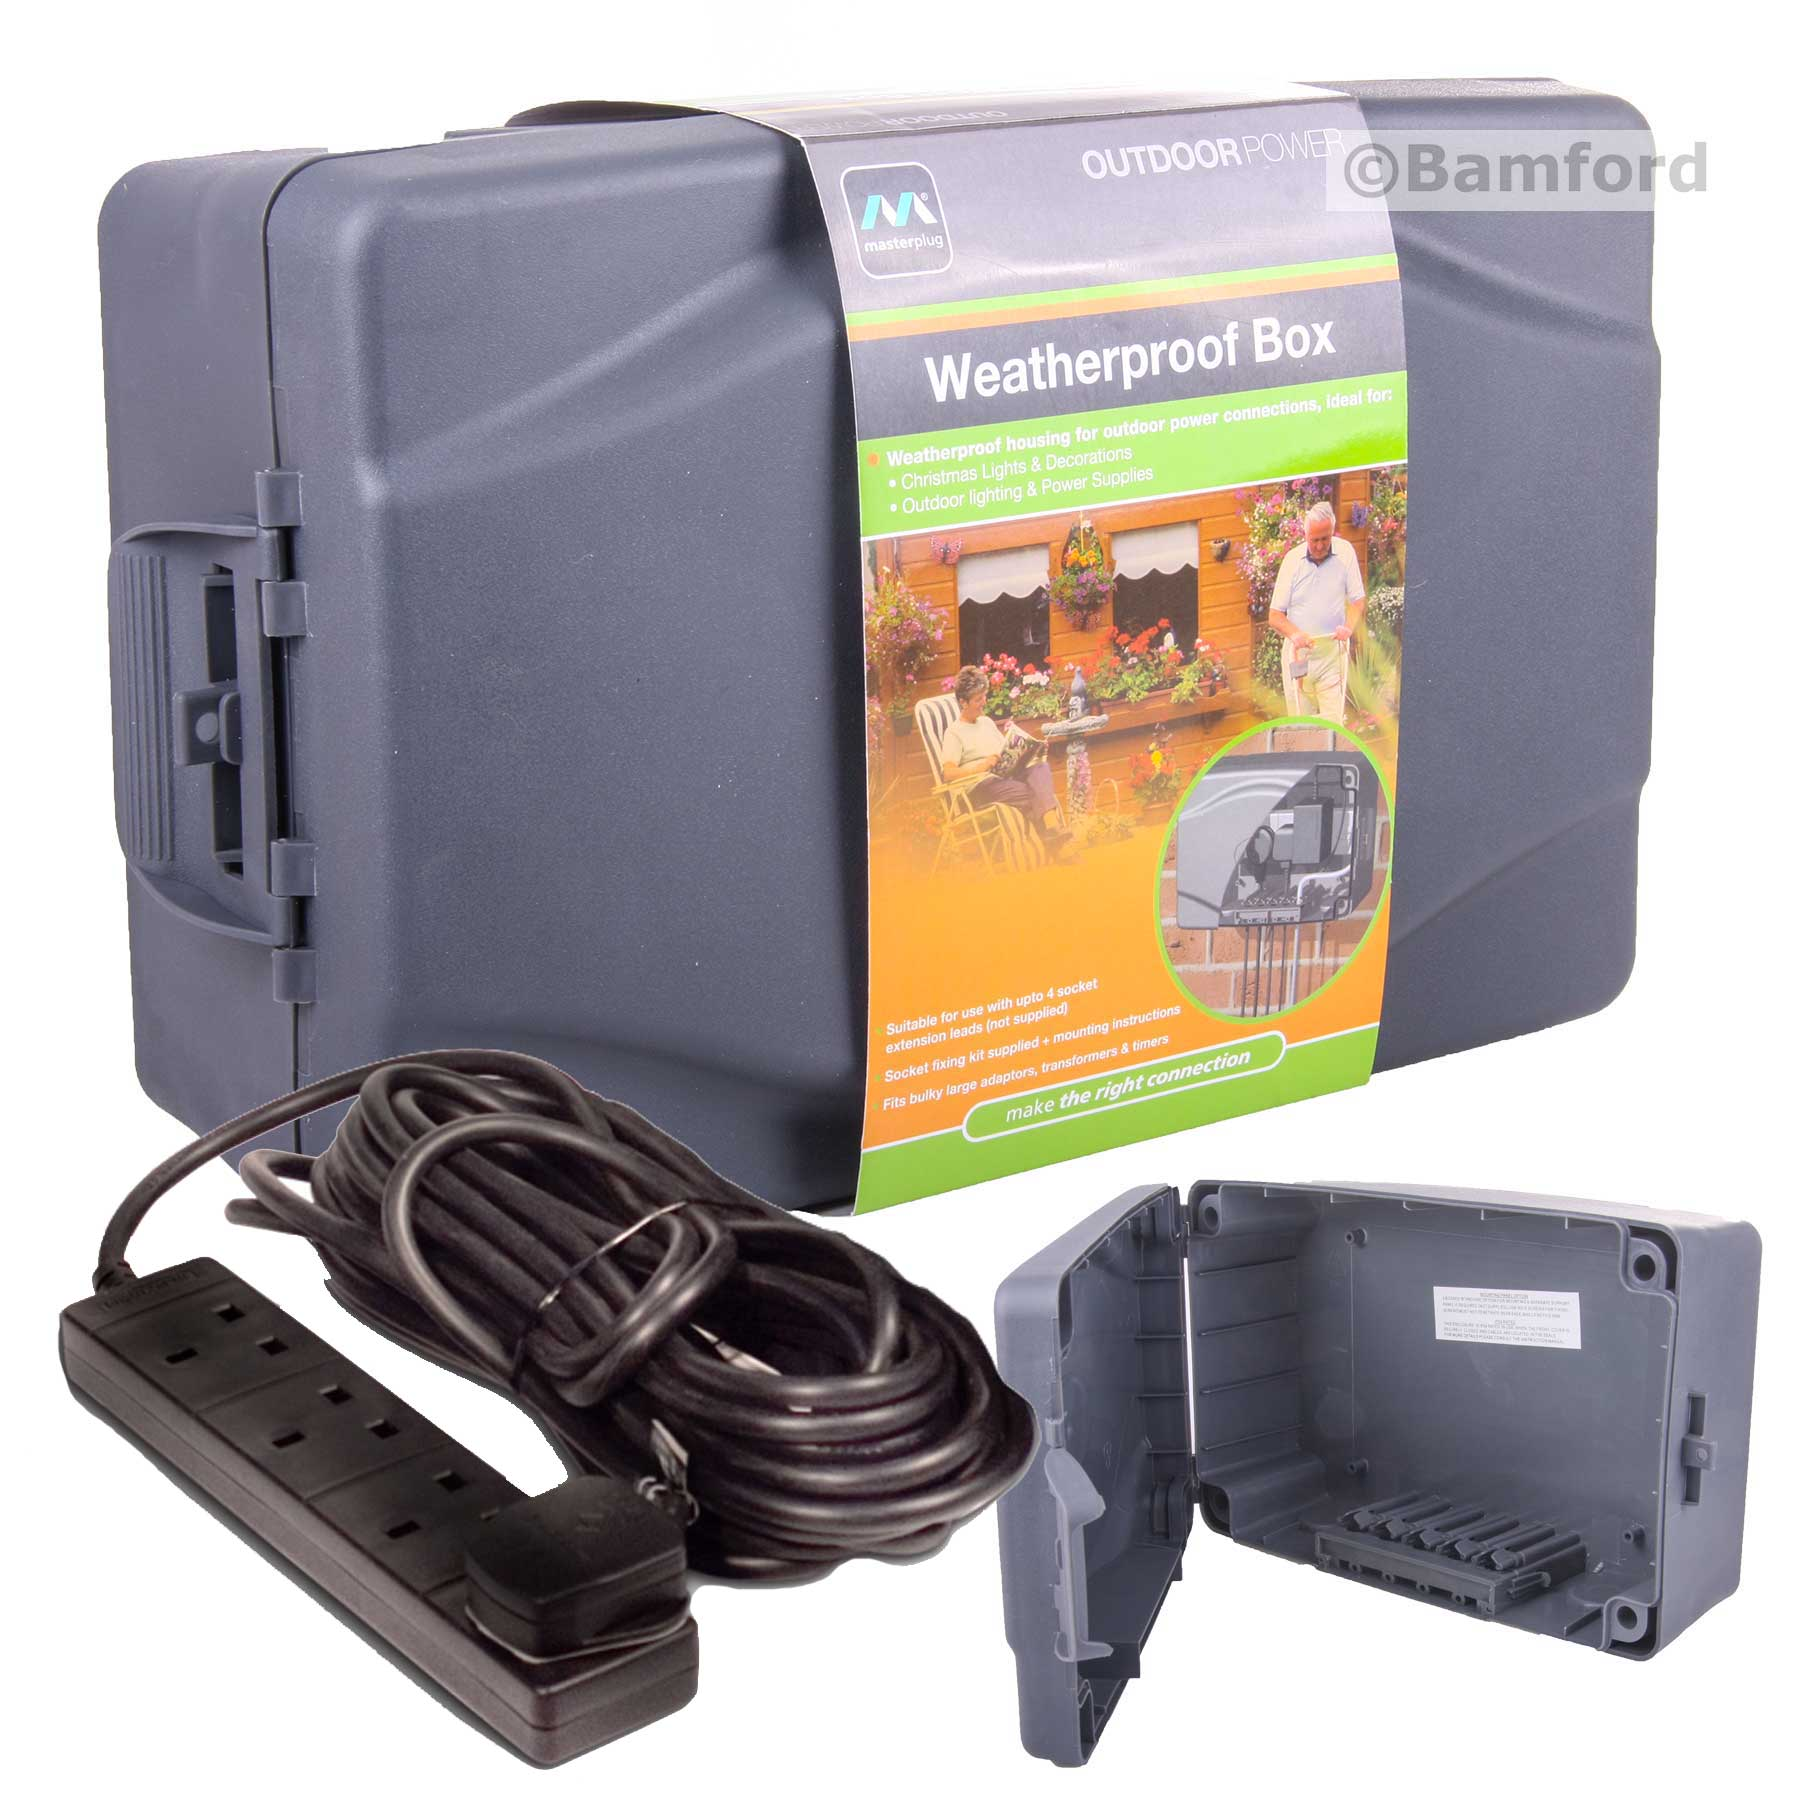 Masterplug Weatherproof Box With 10m Extension Lead For Outdoor